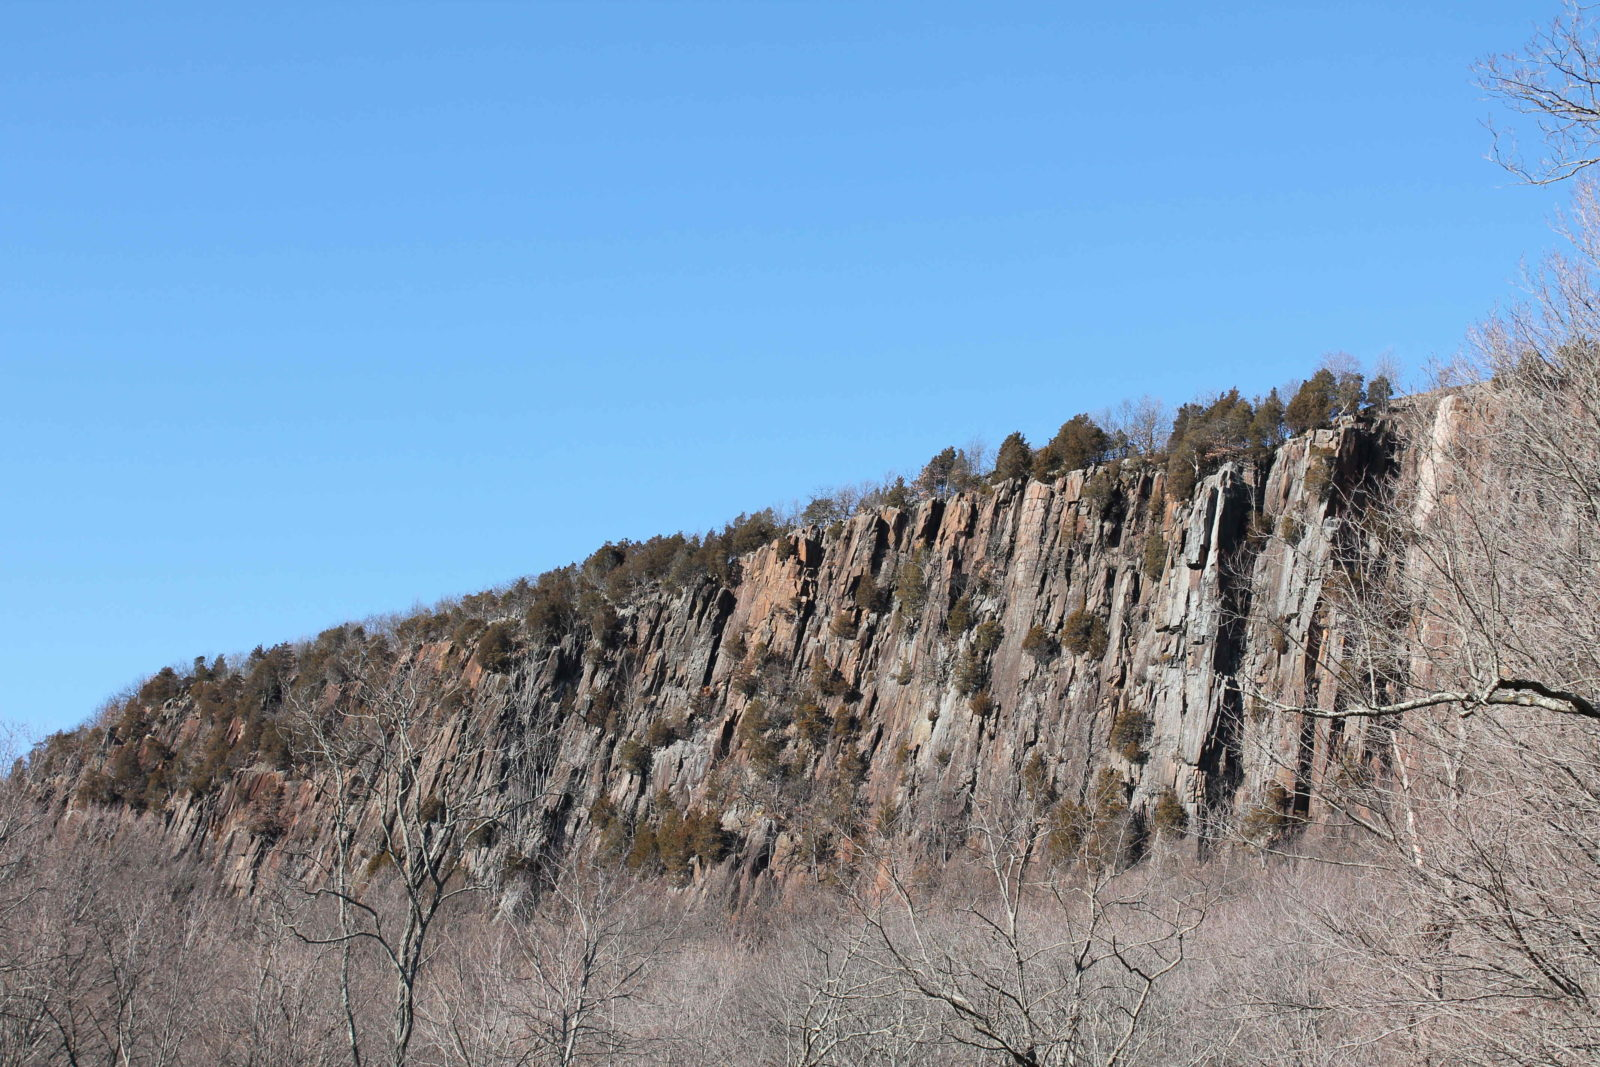 West Rock Mountain Cliff